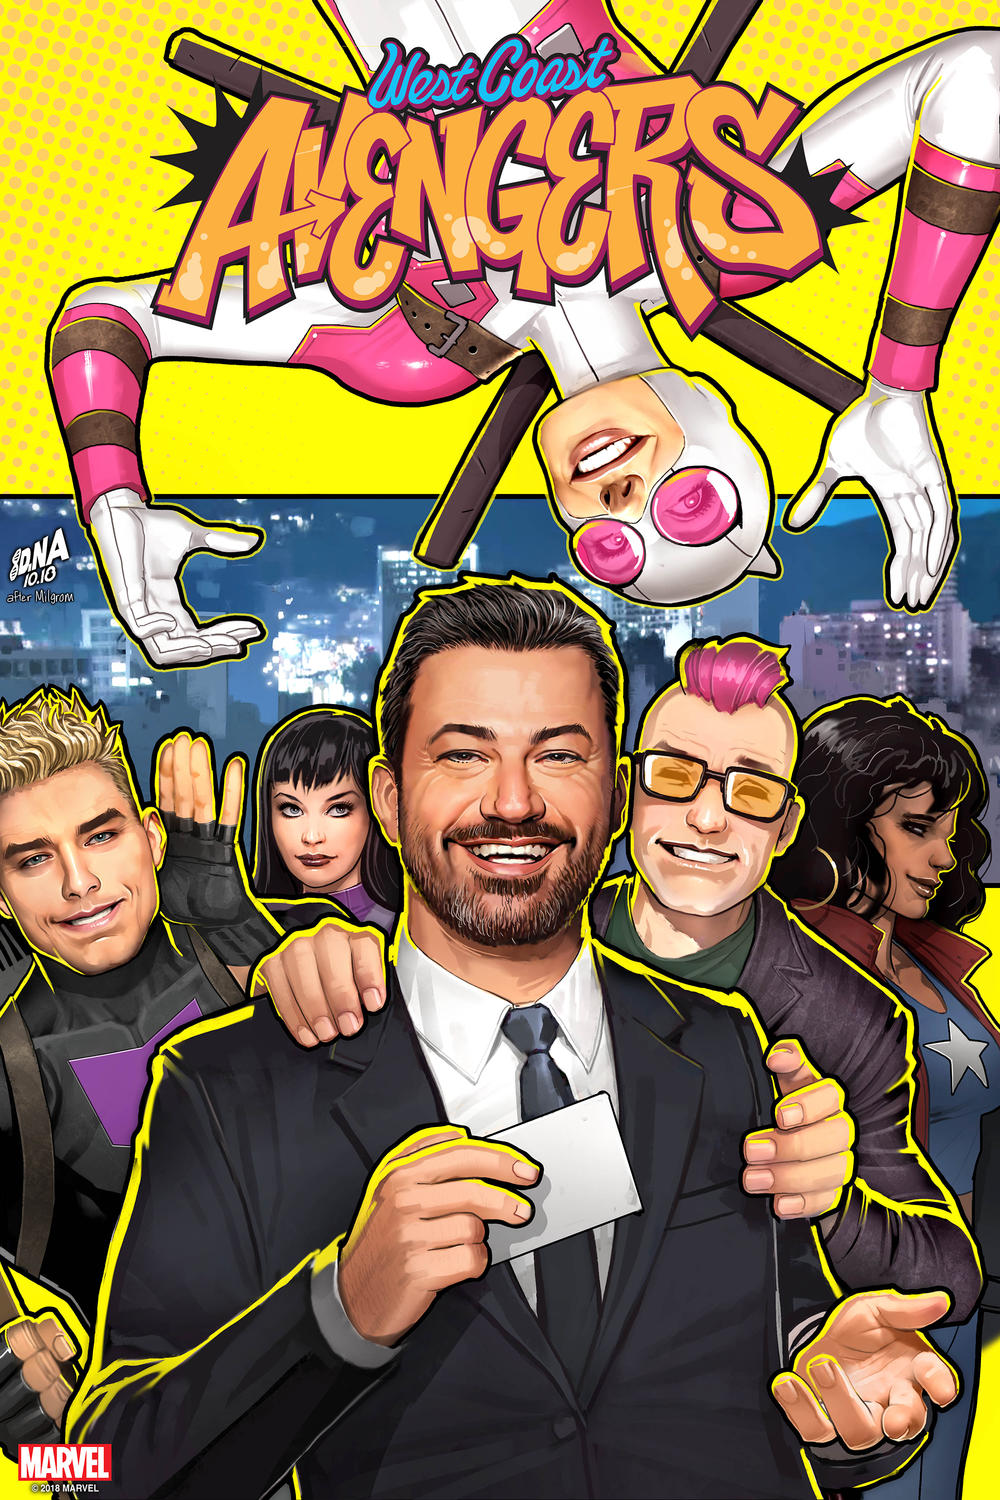 West Coast Avengers Jimmy Kimmel cover